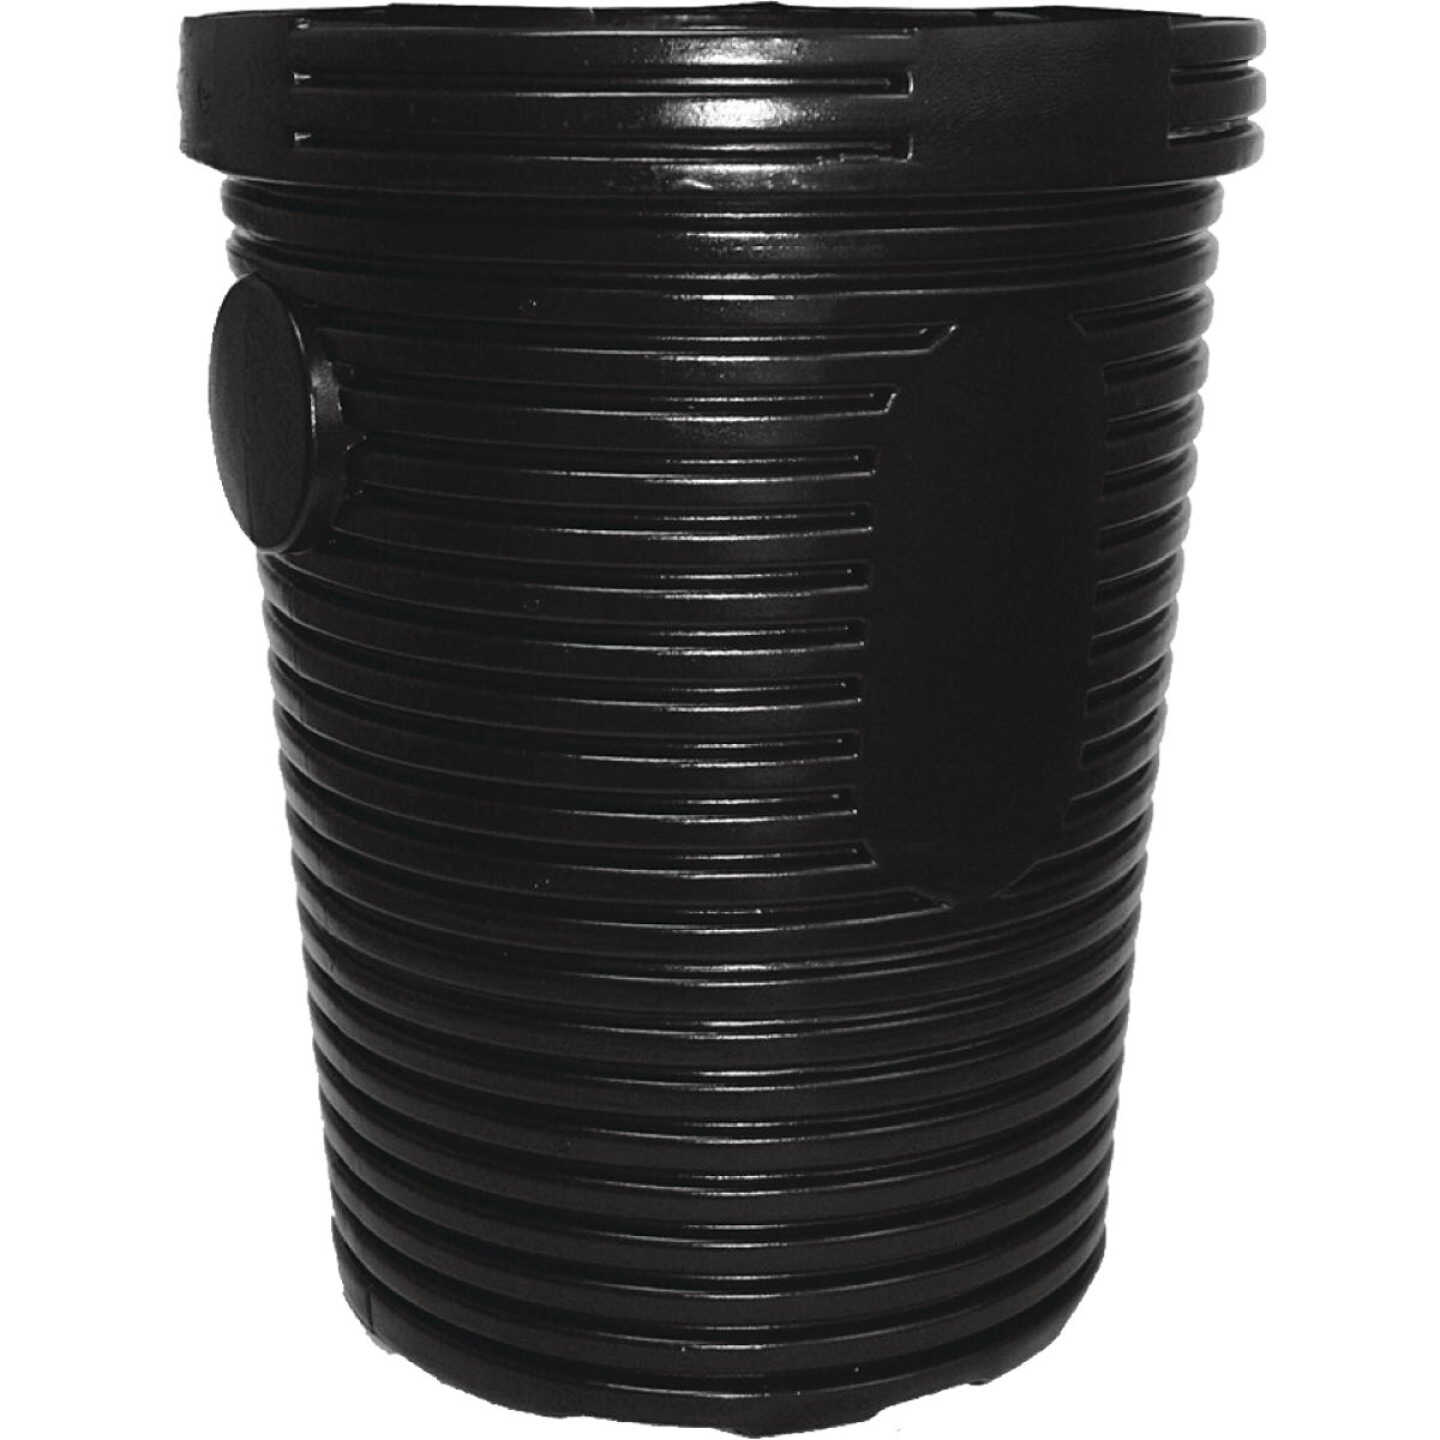 Advanced Drainage Systems HDPE Radon Vented Sump Lid Liner Image 1